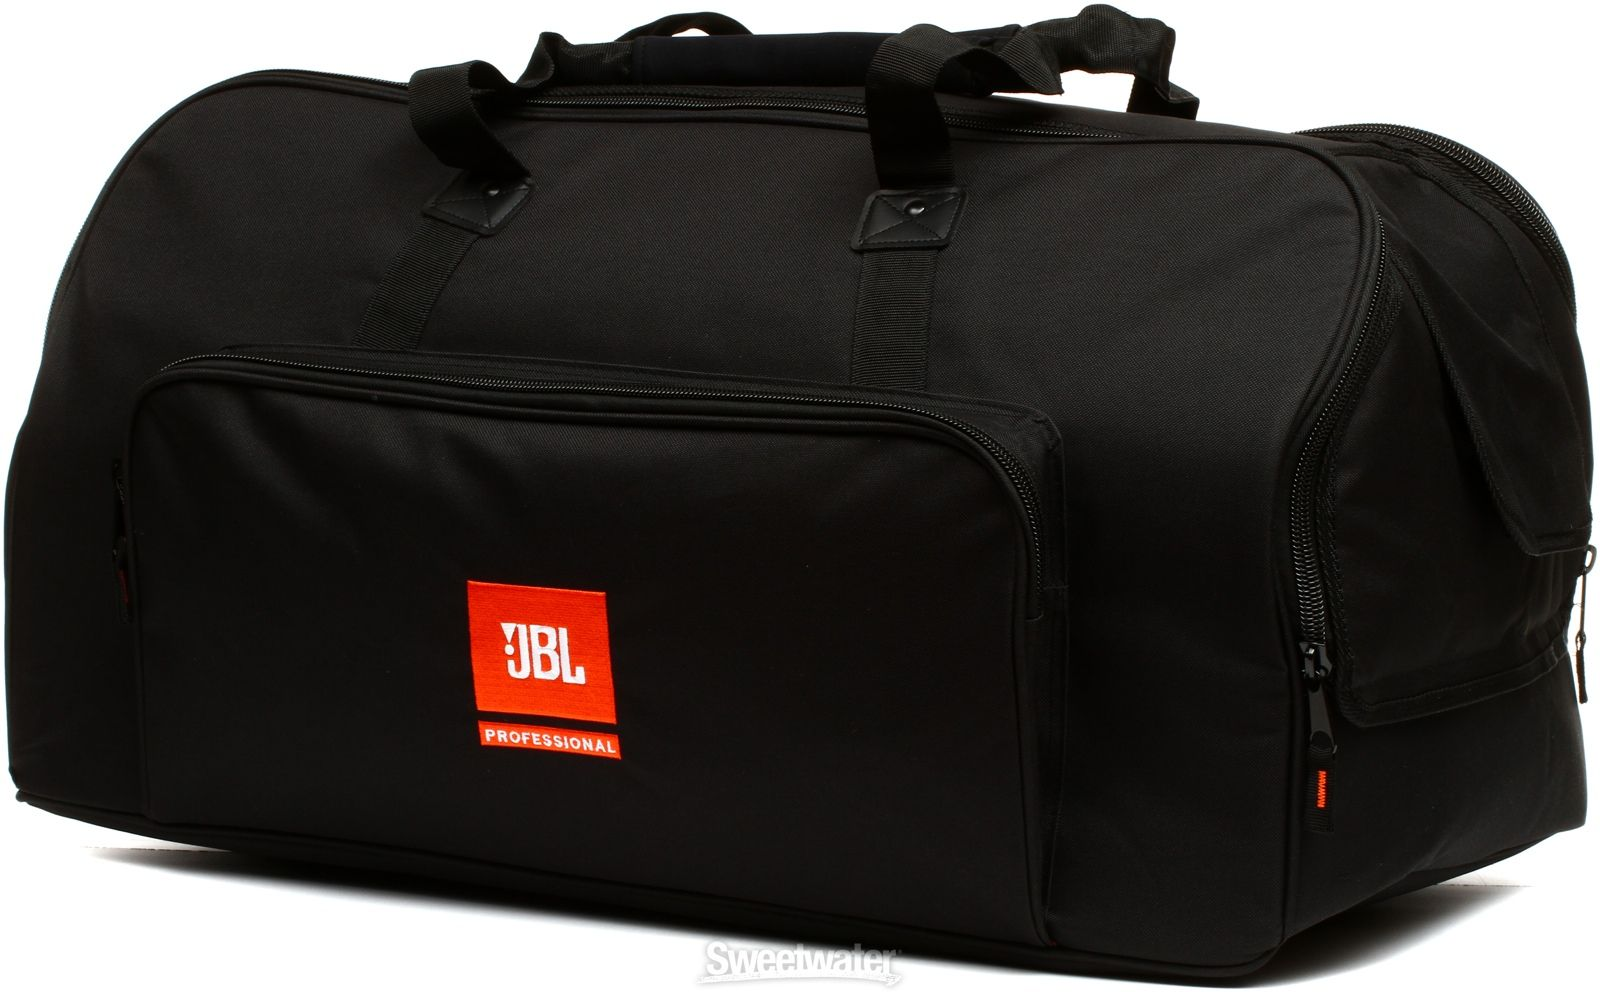 Carrying Bag for JBL EON 615 Speaker with Nylon Exterior, Padded Interior, Heavy-duty Zippers, and Handle Cut-outs - Black